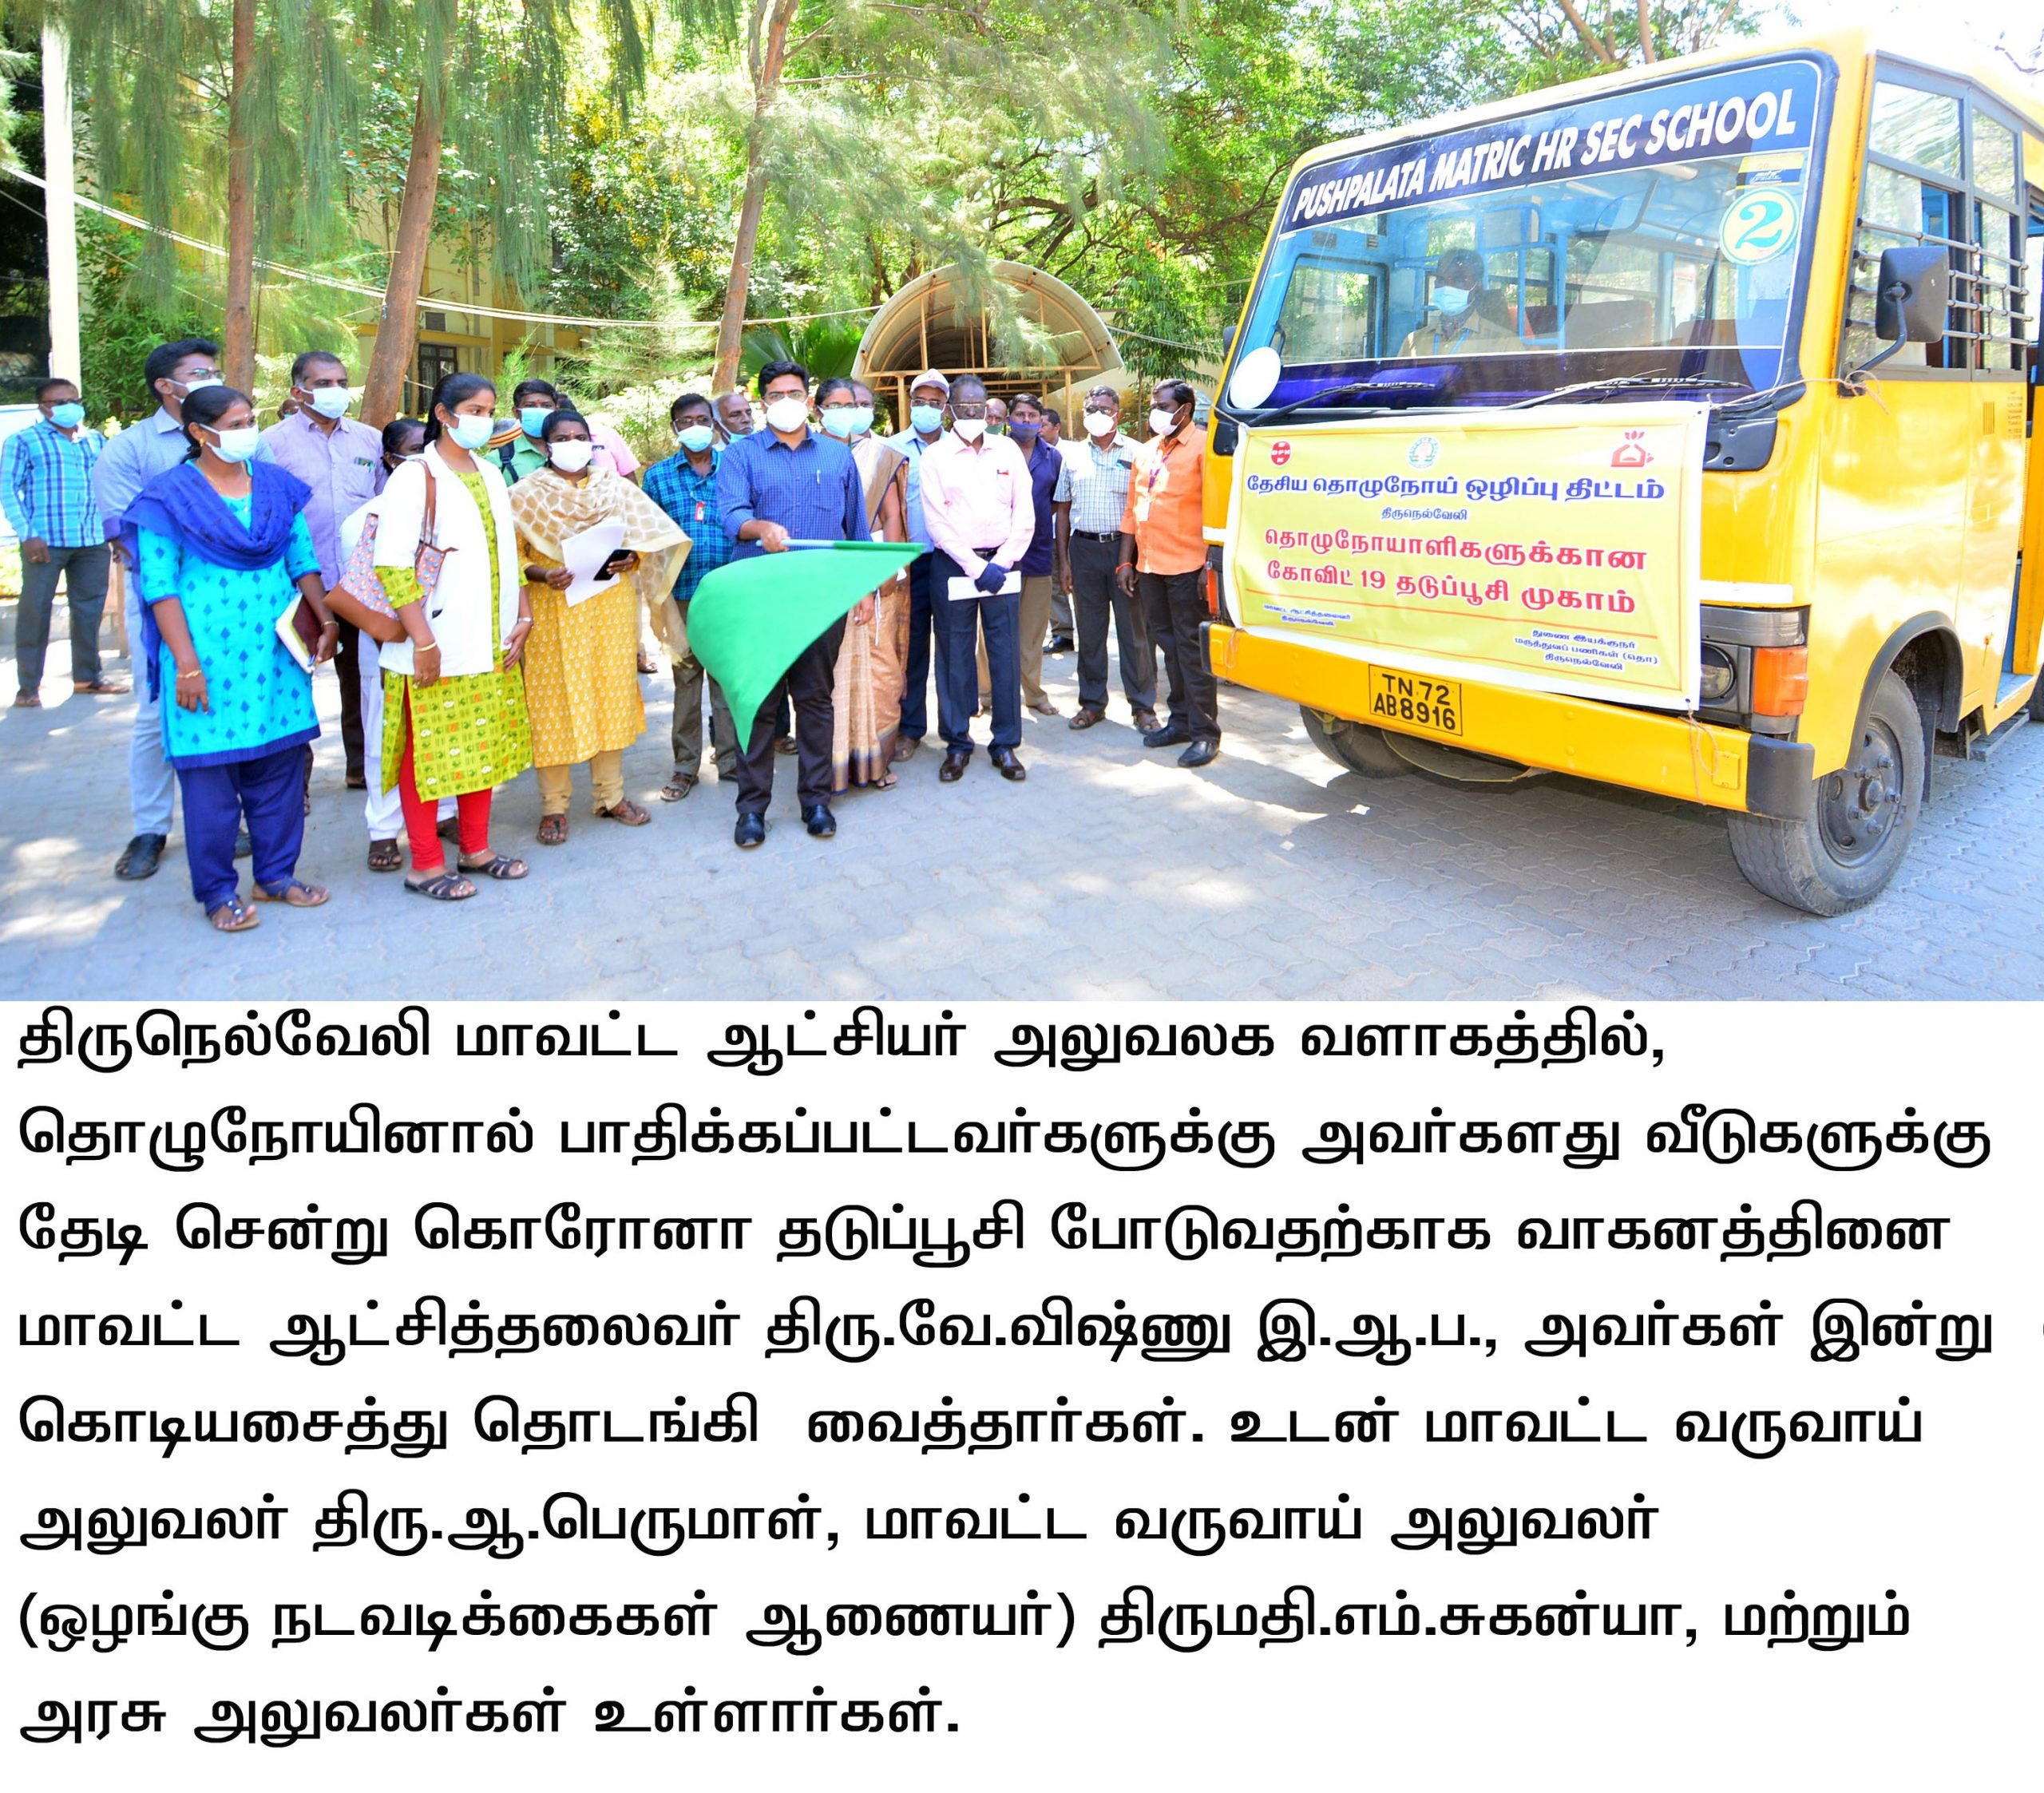 Vehicle to Vaccinate Leprosy victims in their homes